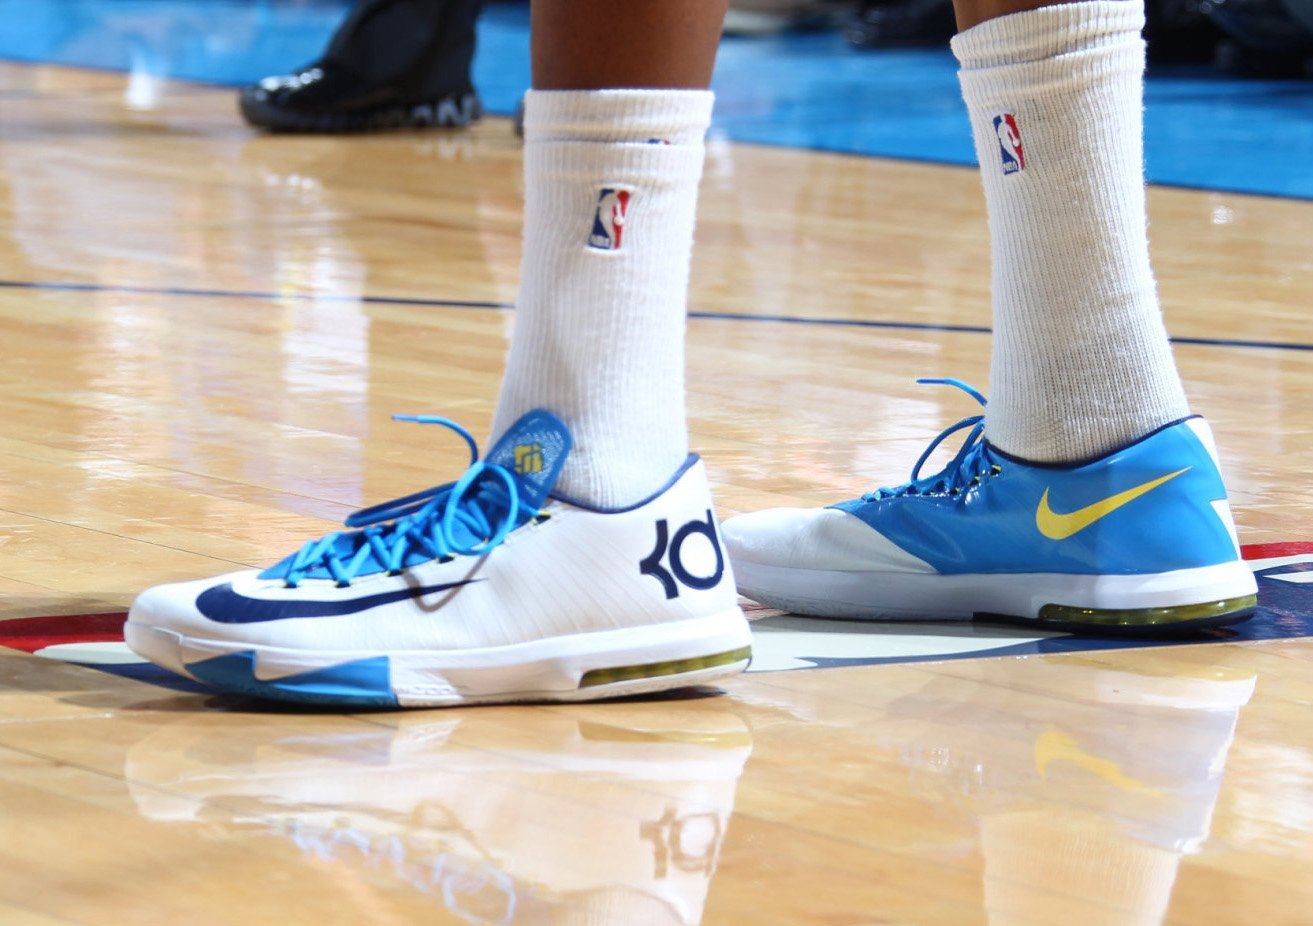 kevin-durant-debuts-new-nike-kd-vi-6-colorway-1